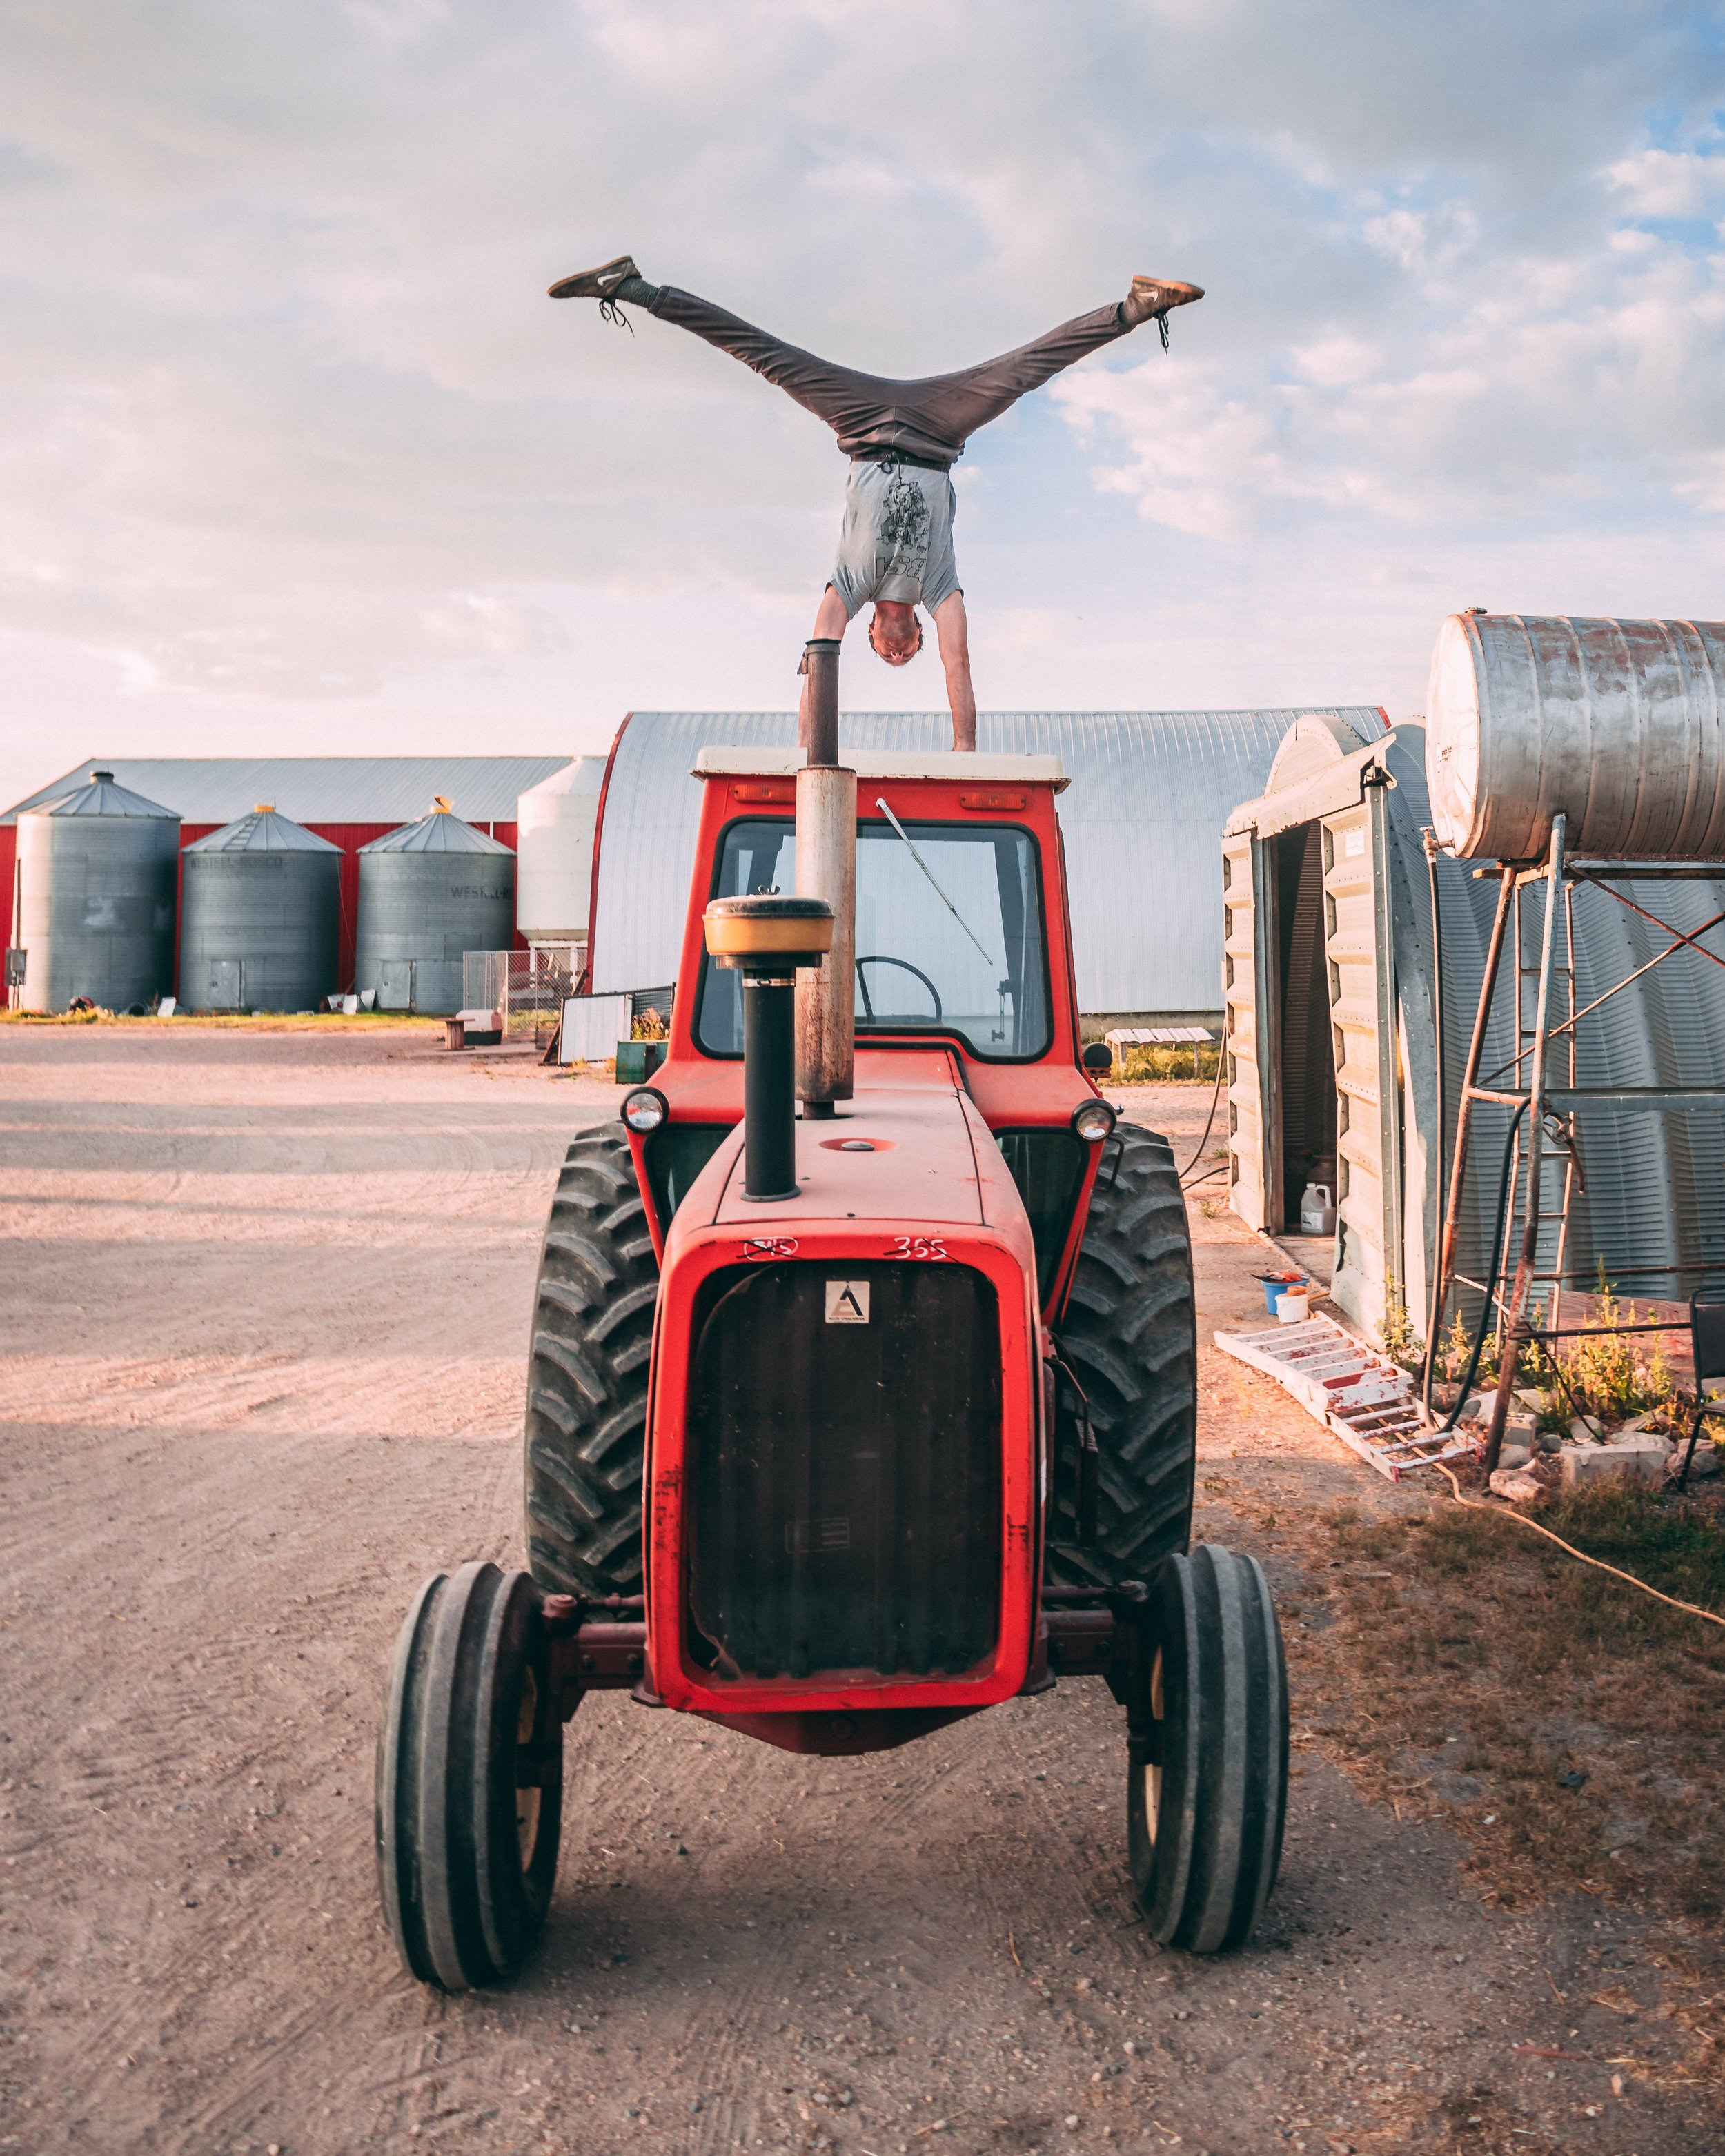 Man doing handstand on tractor